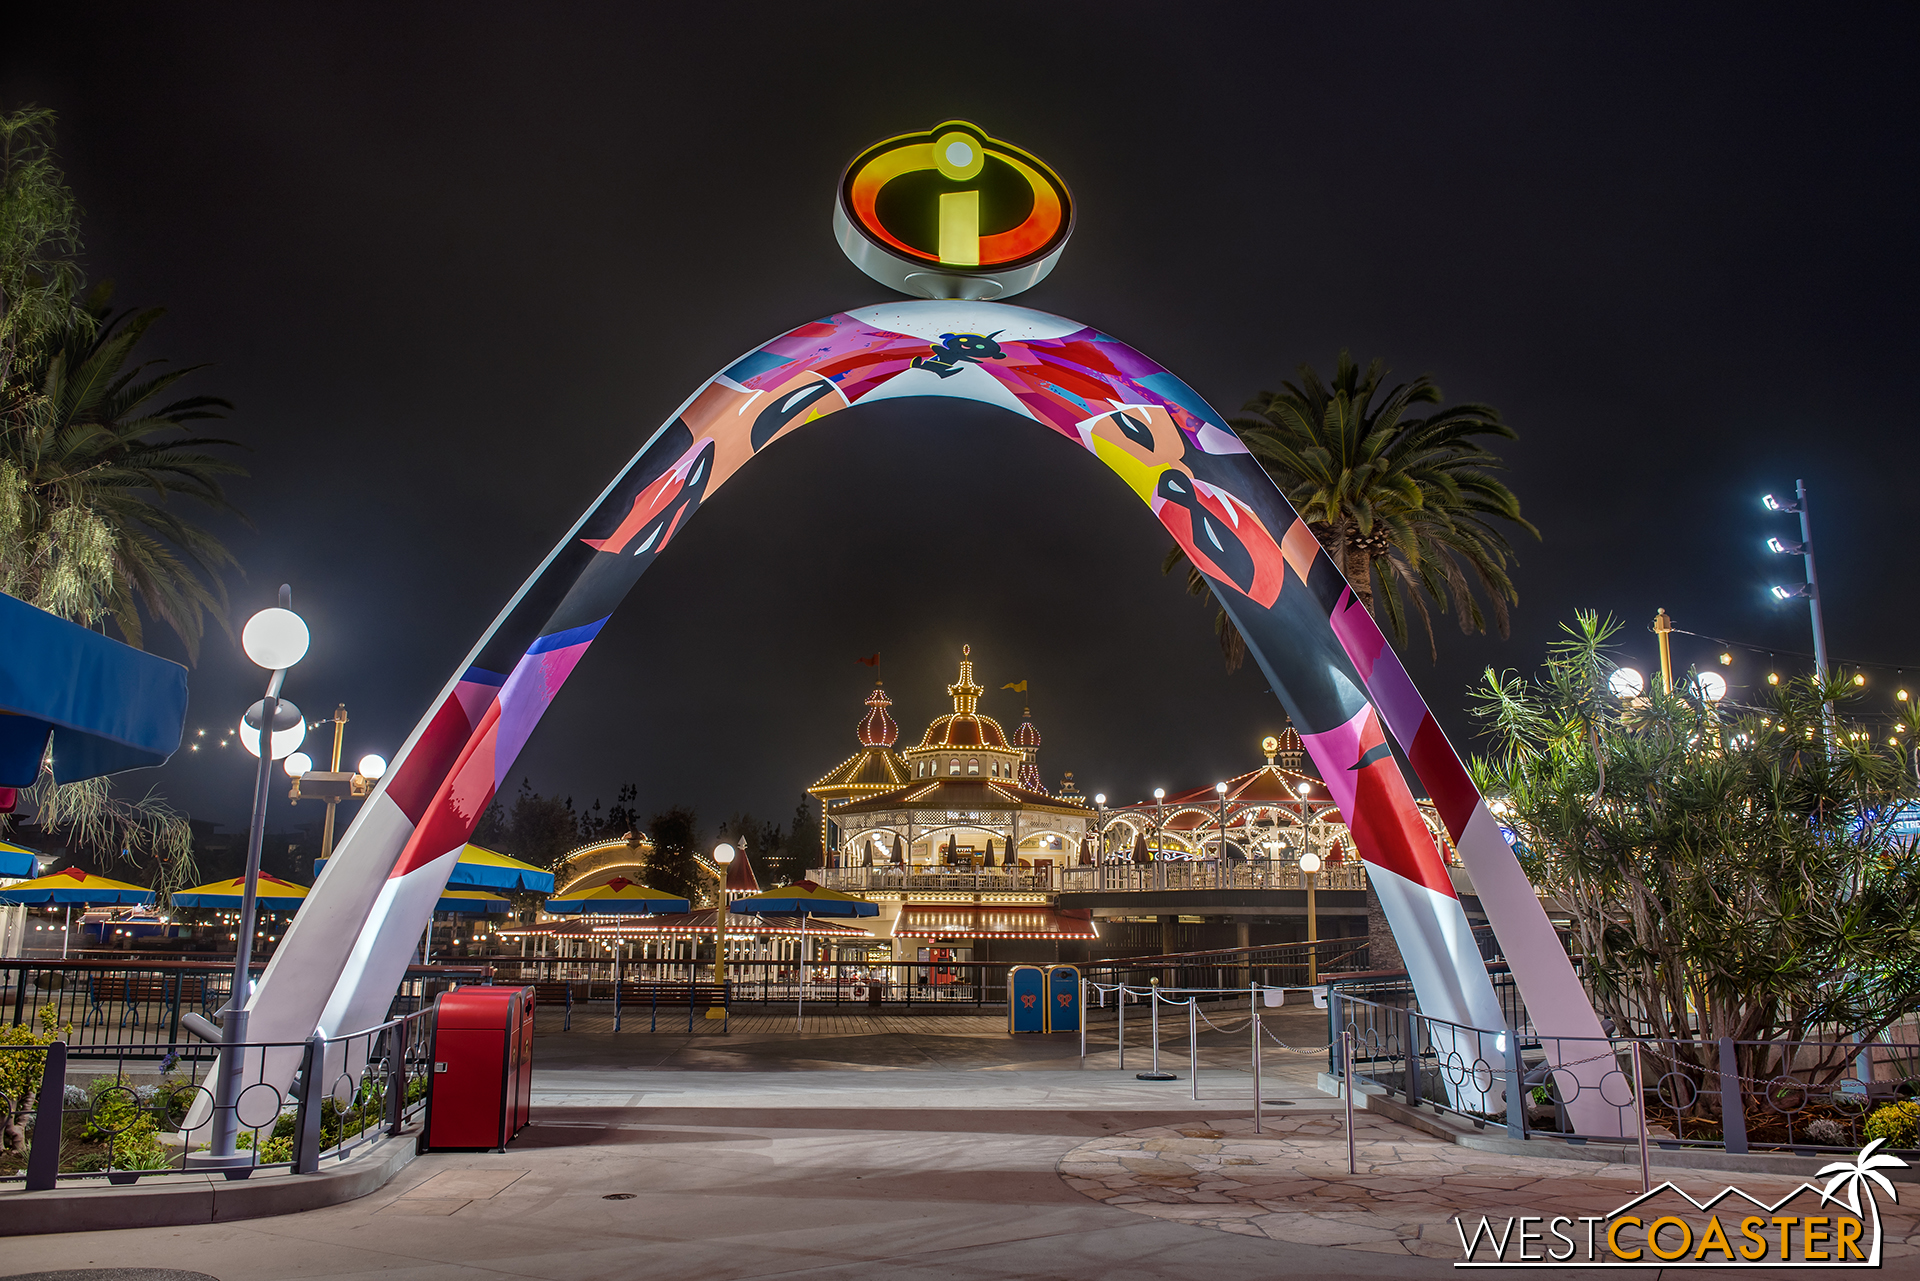 The Incredicoaster entry arch frames Lamplight Lounge nicely when looking the opposite way.